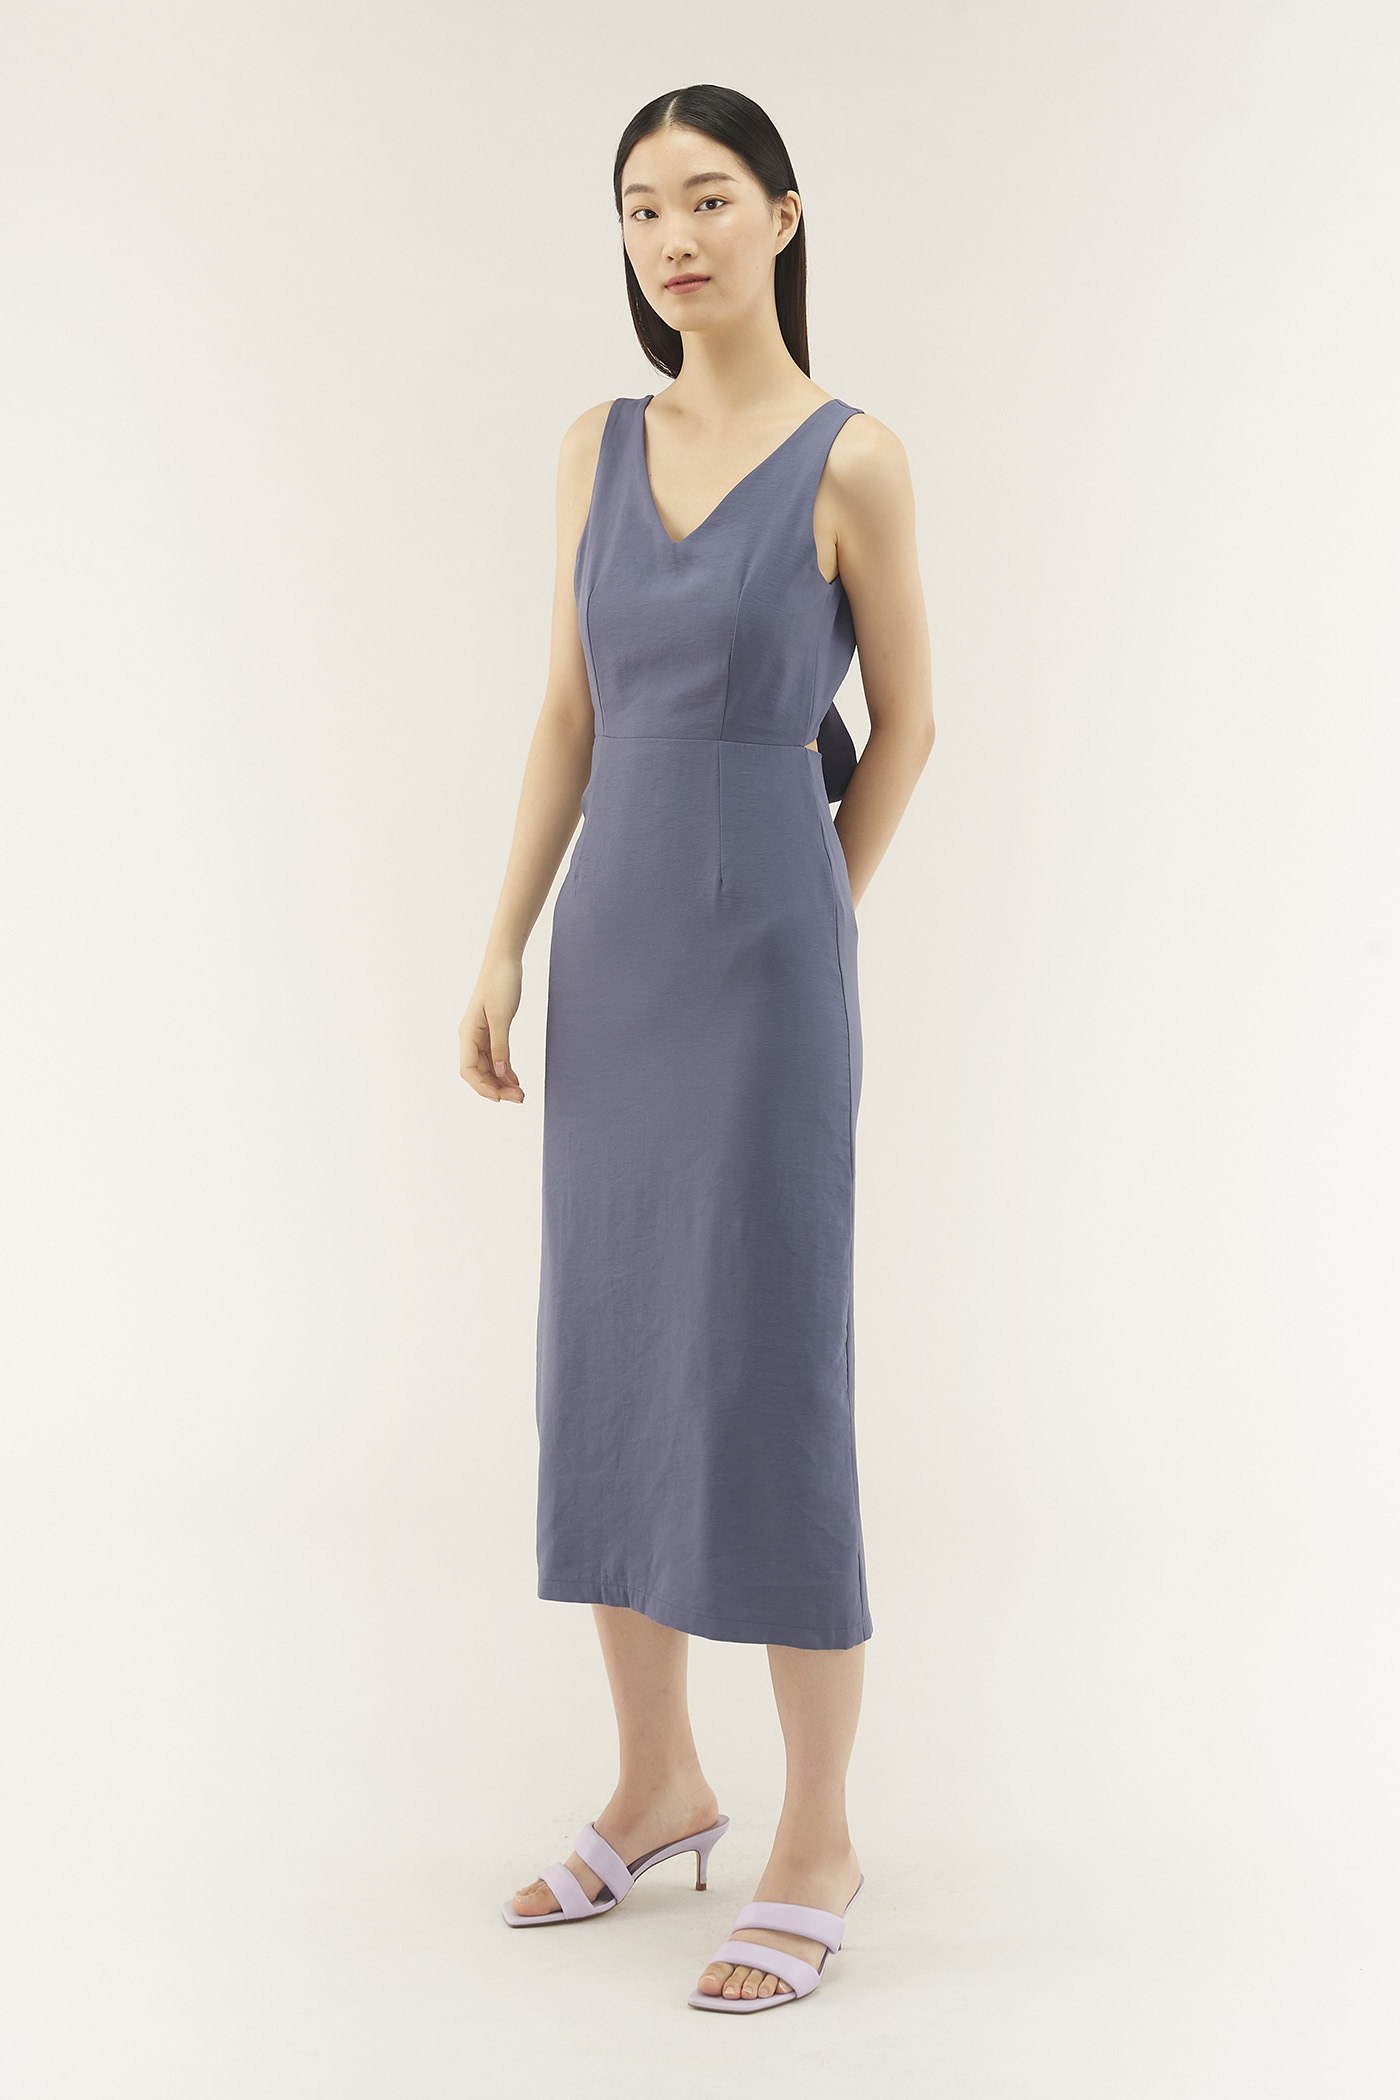 Hilma Strap-tie Dress